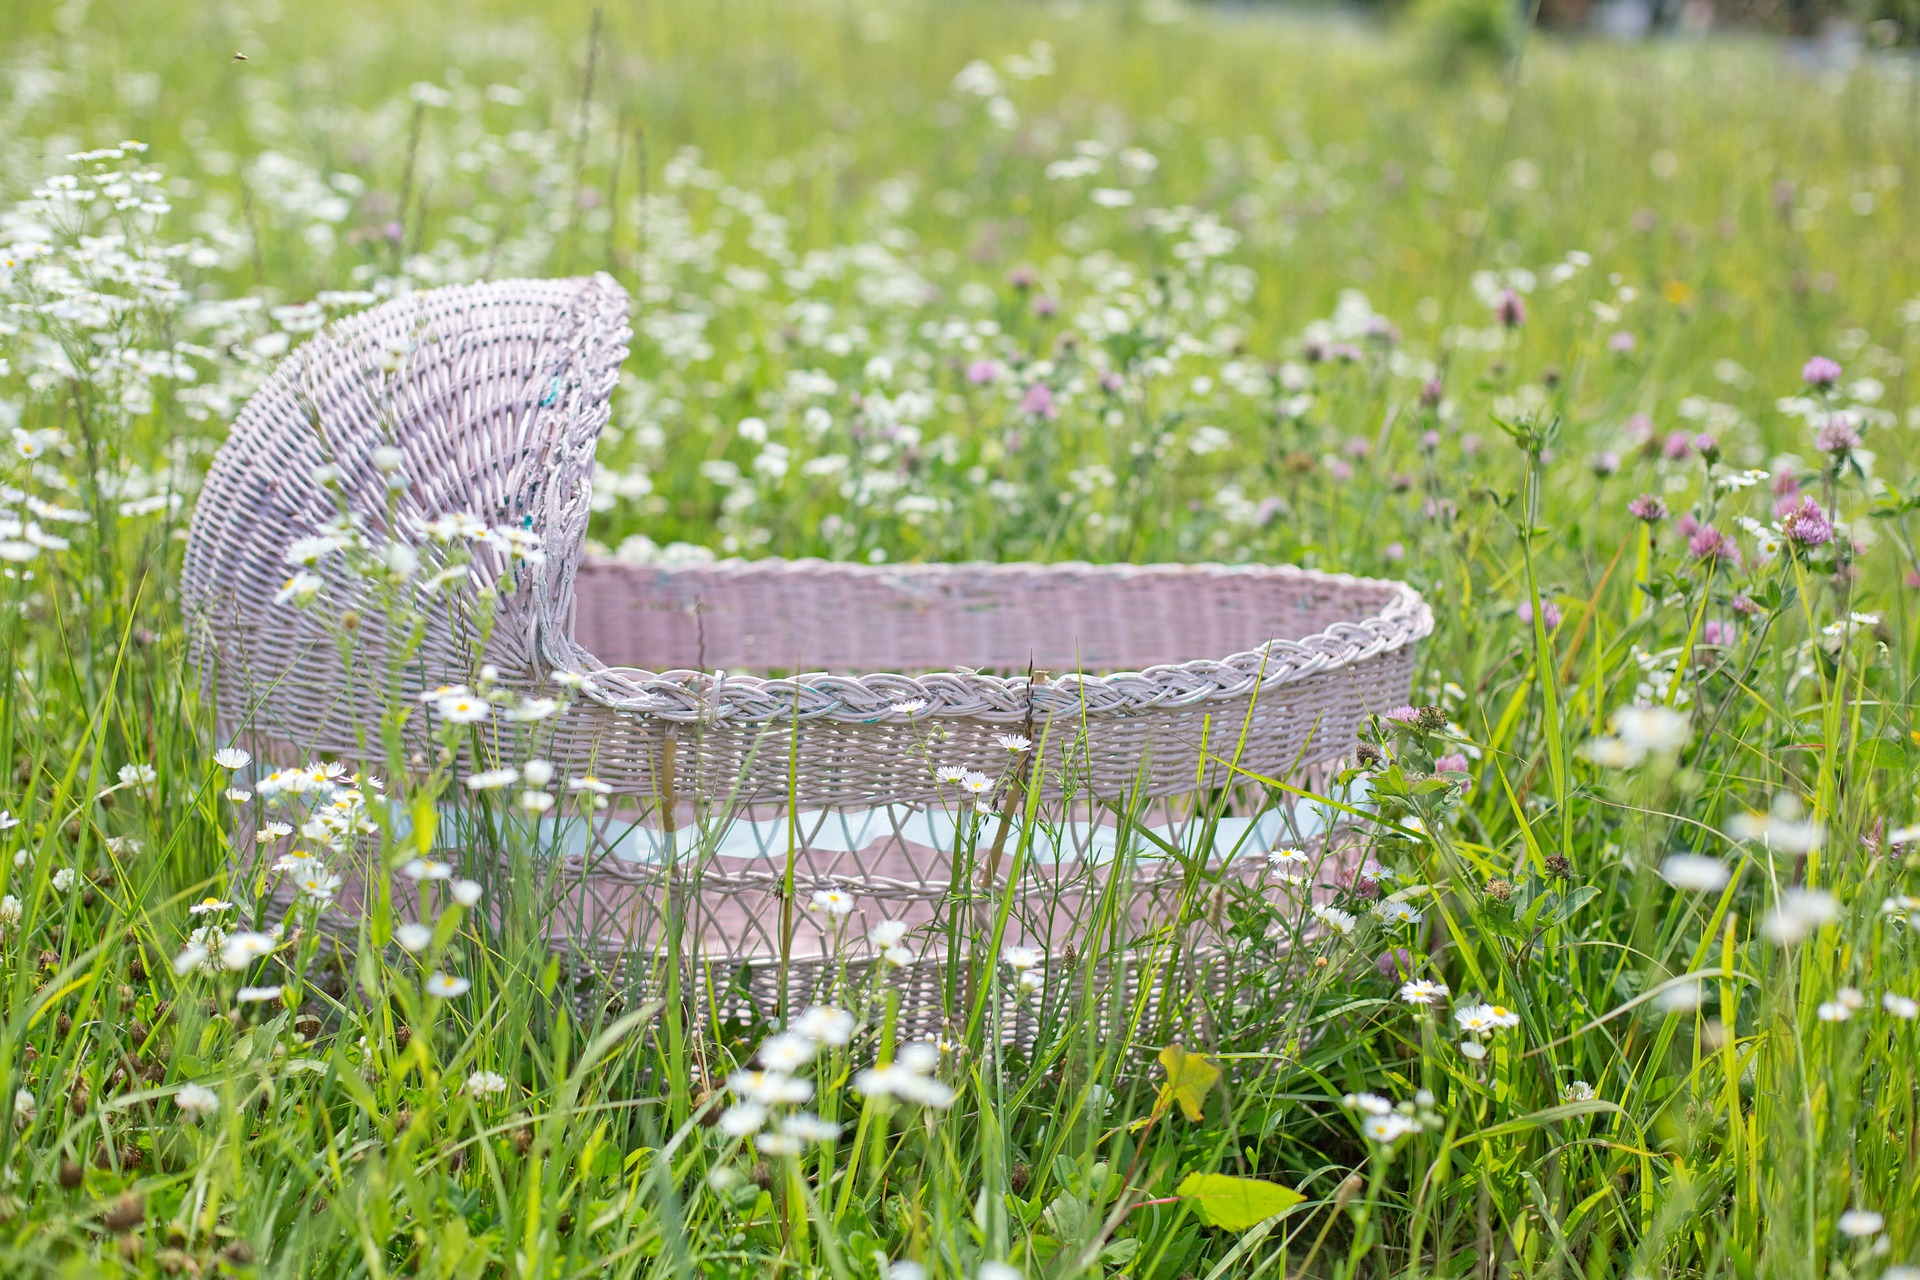 Bassinet in the Garden, Baby, Bassinet, Bed, Blooming, HQ Photo